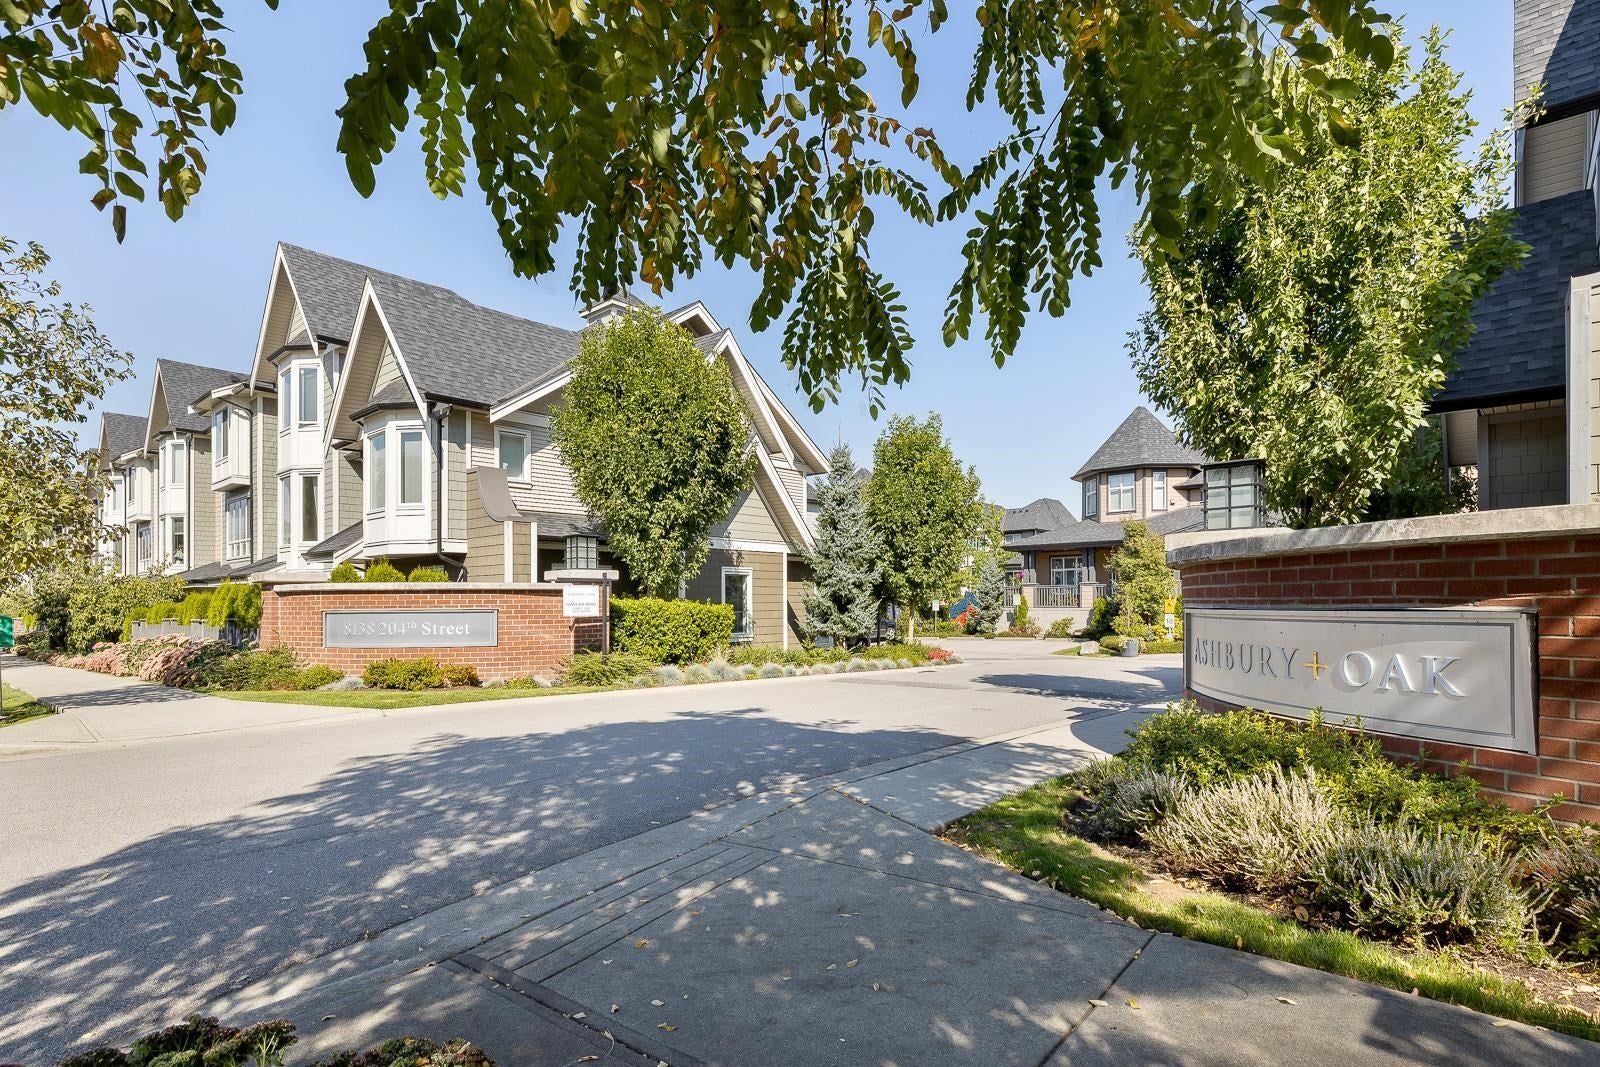 153 8138 204 STREET - Willoughby Heights Townhouse for sale, 2 Bedrooms (R2619088) - #1